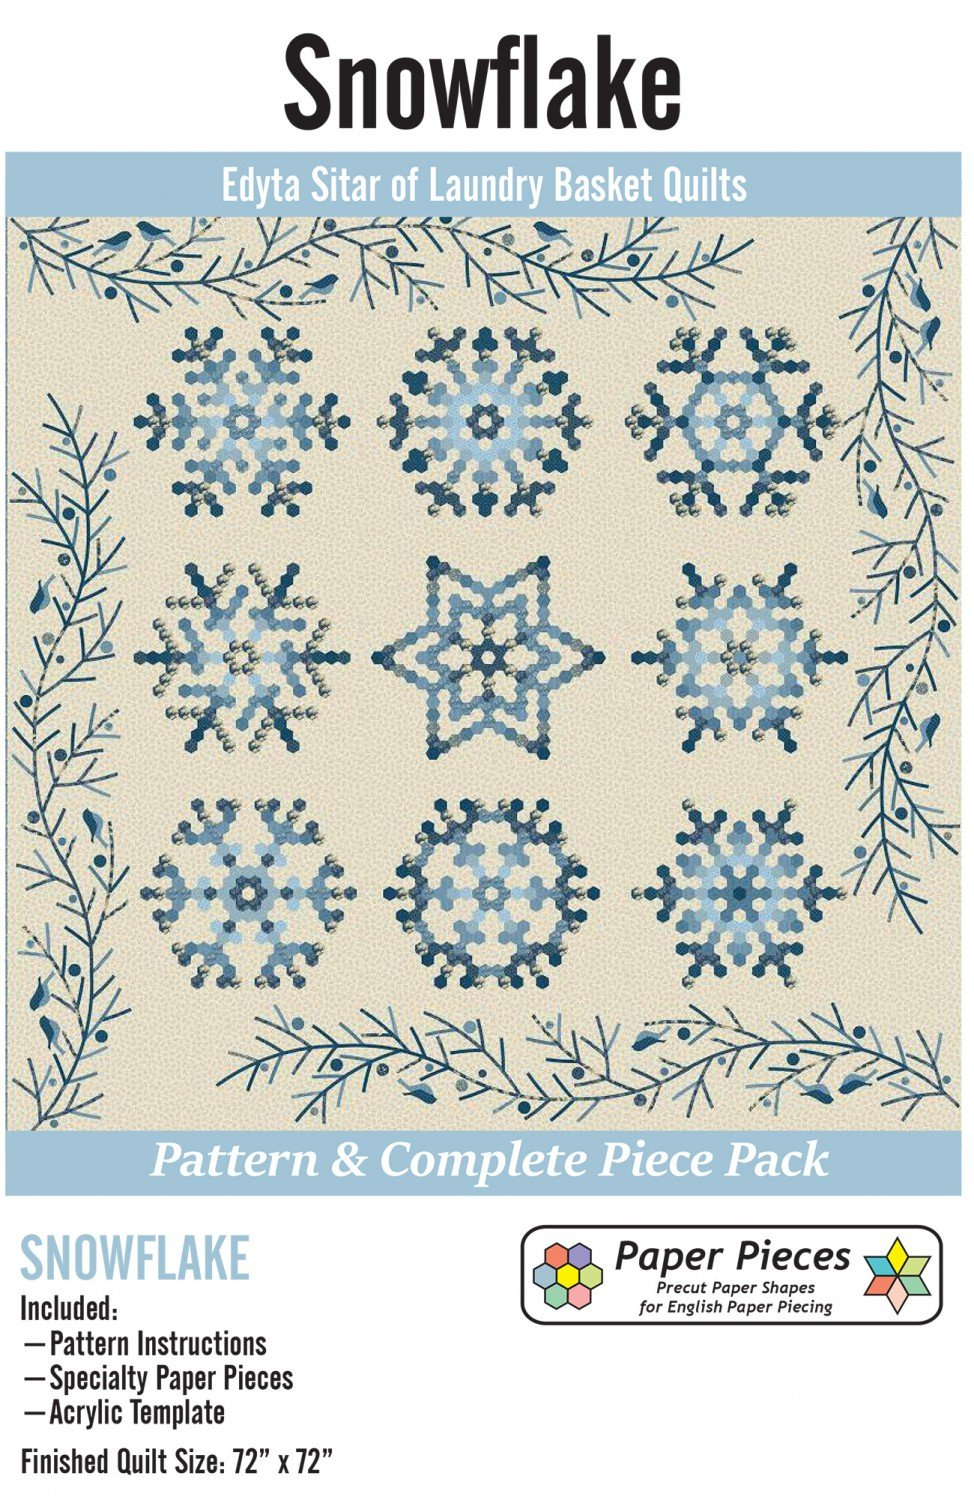 Paper Piece and Acrylic Fabric Cutting Template Pack for Snowflake Complete Set